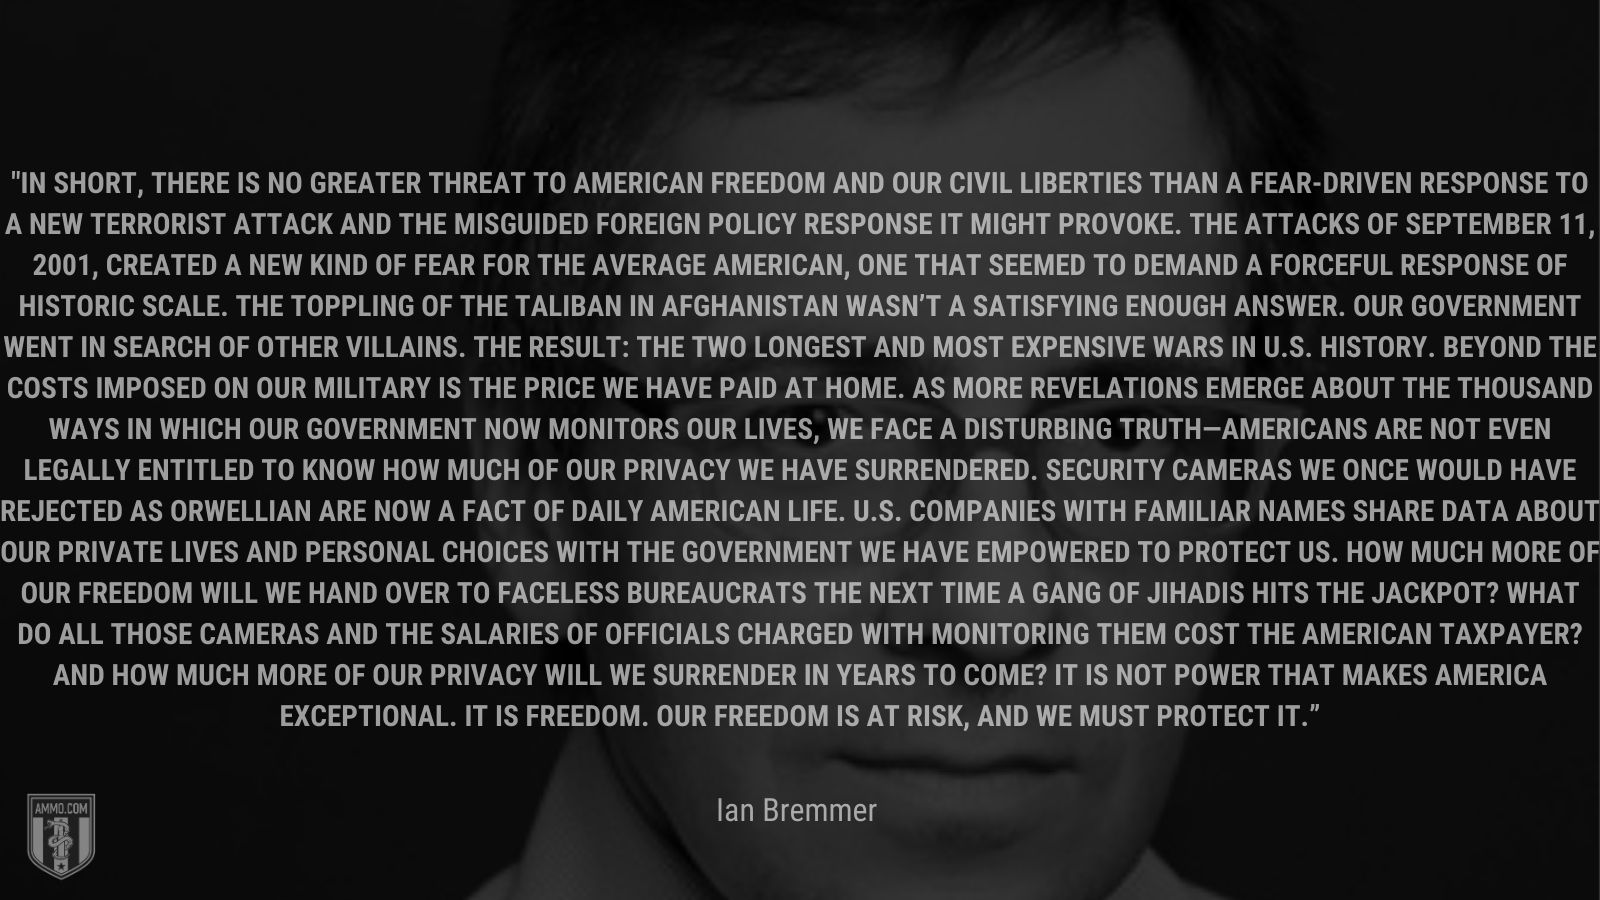 """""""In short, there is no greater threat to American freedom and our civil liberties than a fear-driven response to a new terrorist attack and the misguided foreign policy response it might provoke. The attacks of September 11, 2001, created a new kind of fear for the average American, one that seemed to demand a forceful response of historic scale. The toppling of the Taliban in Afghanistan wasn't a satisfying enough answer. Our government went in search of other villains. The result: the two longest and most expensive wars in U.S. history. Beyond the costs imposed on our military is the price we have paid at home. As more revelations emerge about the thousand ways in which our government now monitors our lives, we face a disturbing truth—Americans are not even legally entitled to know how much of our privacy we have surrendered. Security cameras we once would have rejected as Orwellian are now a fact of daily American life. U.S. companies with familiar names share data about our private lives and personal choices with the government we have empowered to protect us. How much more of our freedom will we hand over to faceless bureaucrats the next time a gang of jihadis hits the jackpot? What do all those cameras and the salaries of officials charged with monitoring them cost the American taxpayer? And how much more of our privacy will we surrender in years to come? It is not power that makes America exceptional. It is freedom. Our freedom is at risk, and we must protect it."""" -"""